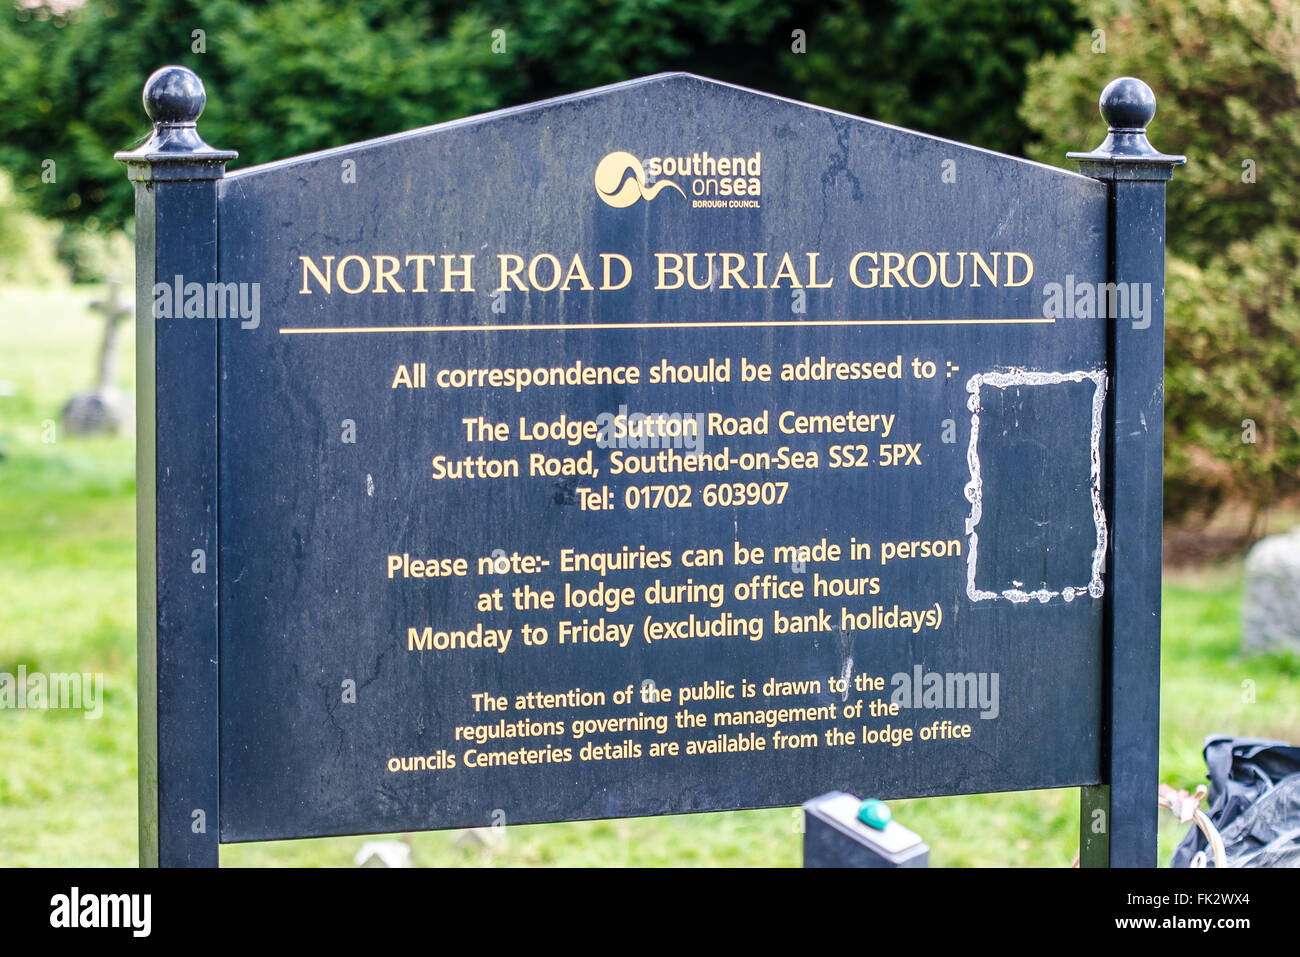 North Road Burial Ground is one of three cemeteries operated by the council in the Southend borough. Space for copy - Stock Image